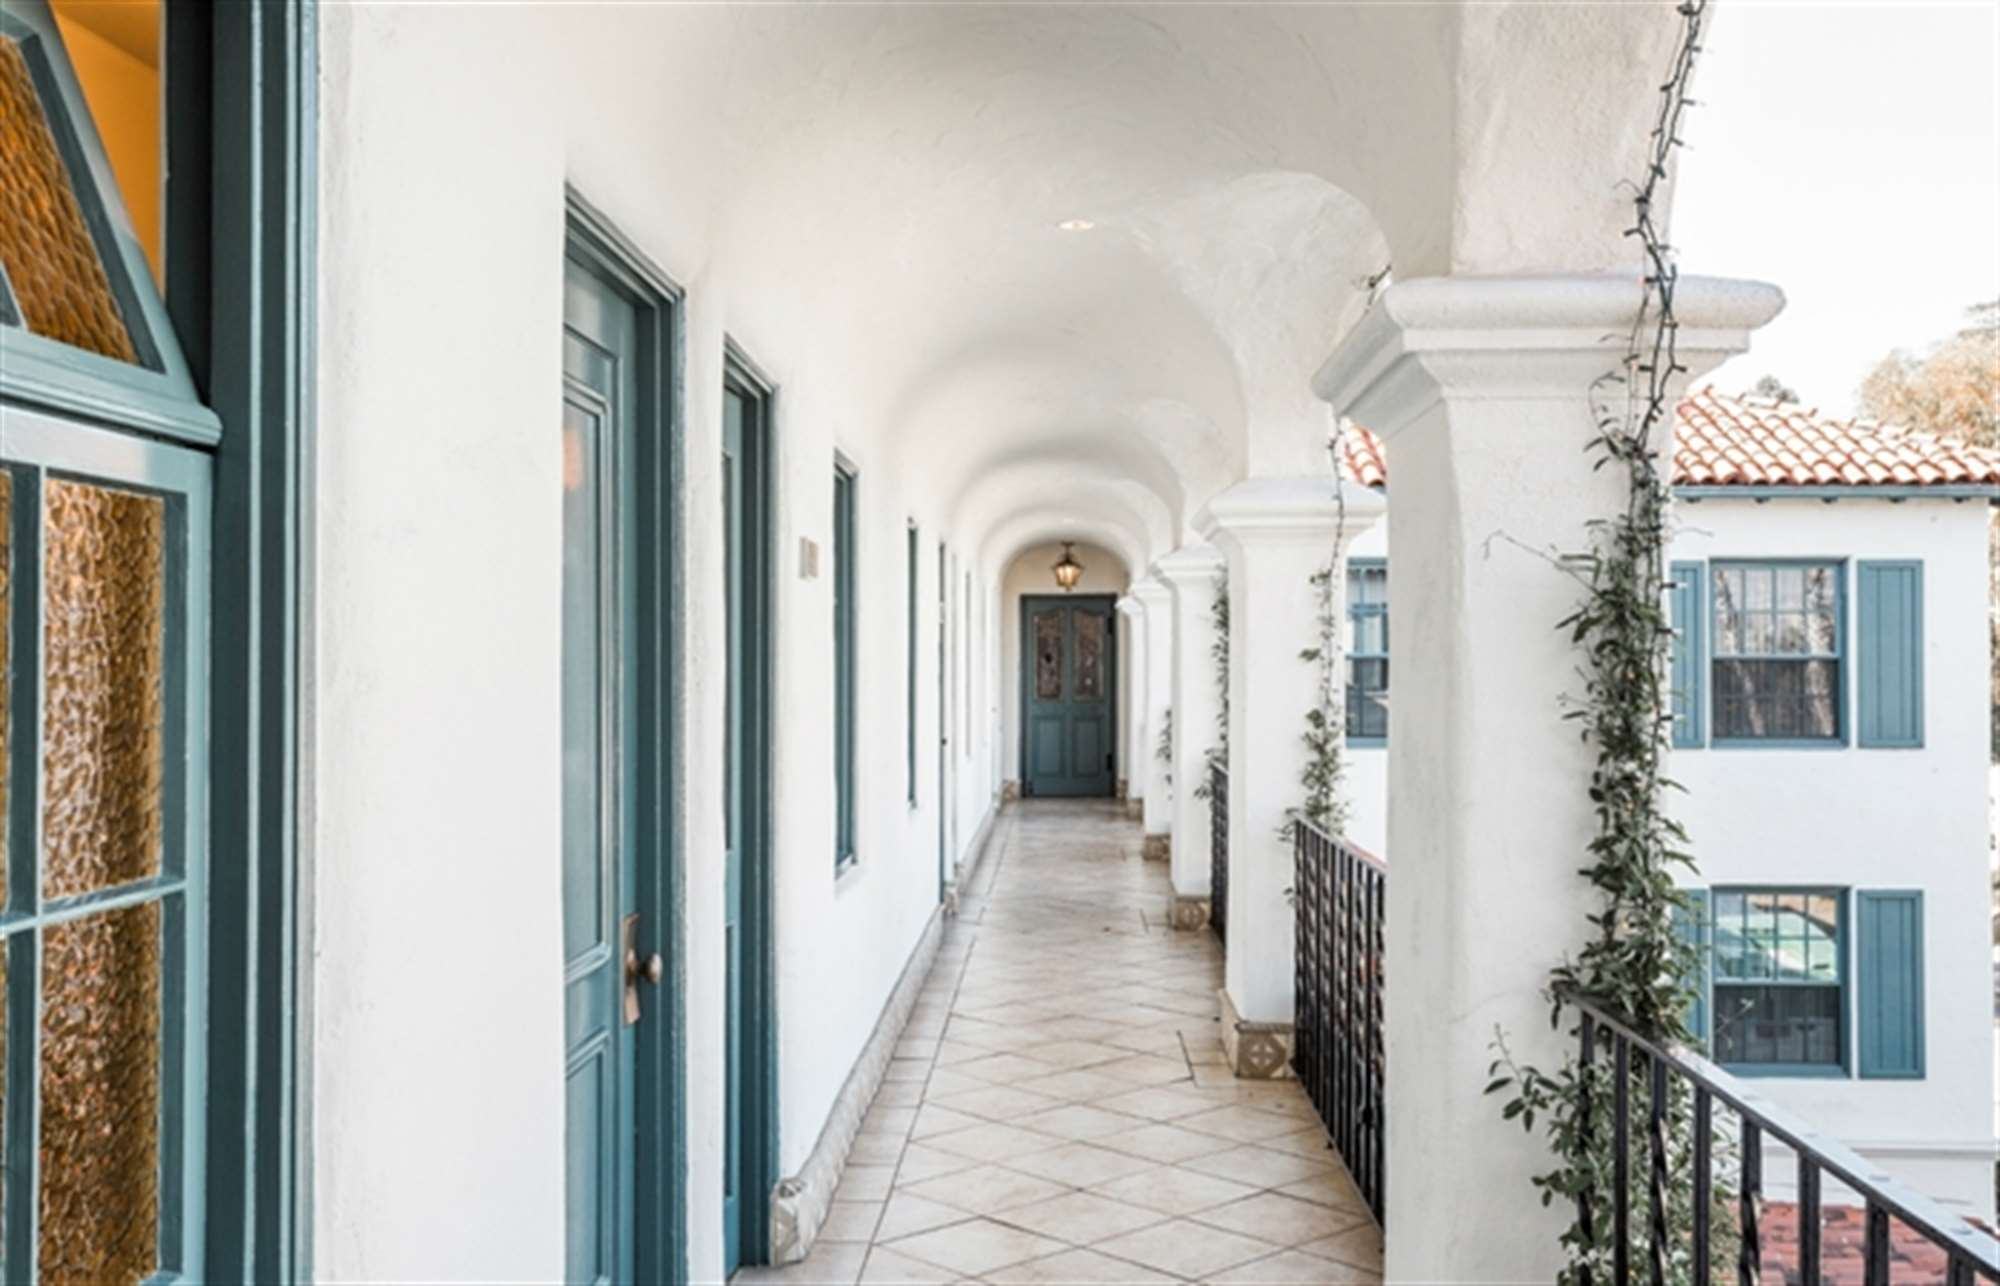 santa barbara luxury hotel Building Breezeway